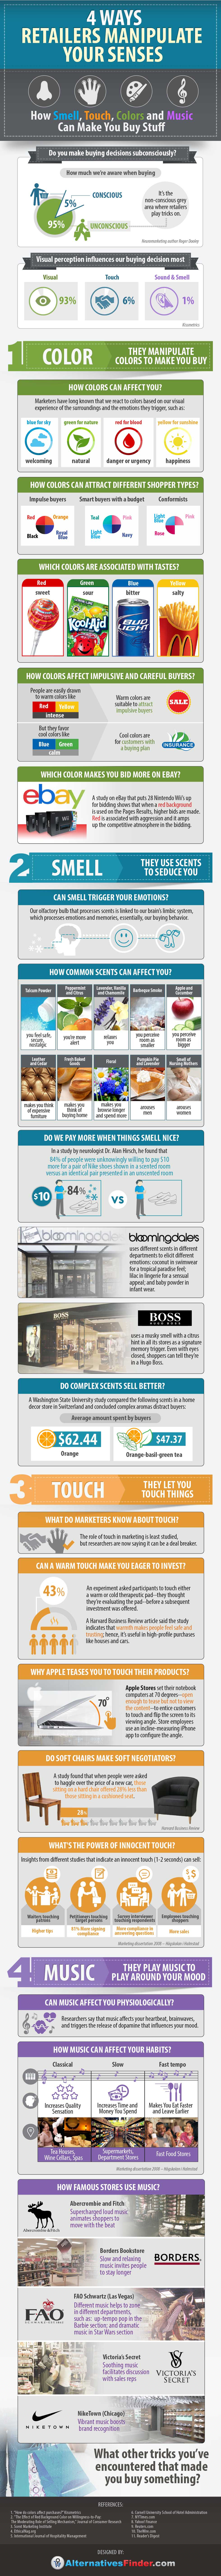 Infographic on how retails capitalize on our human psychologies